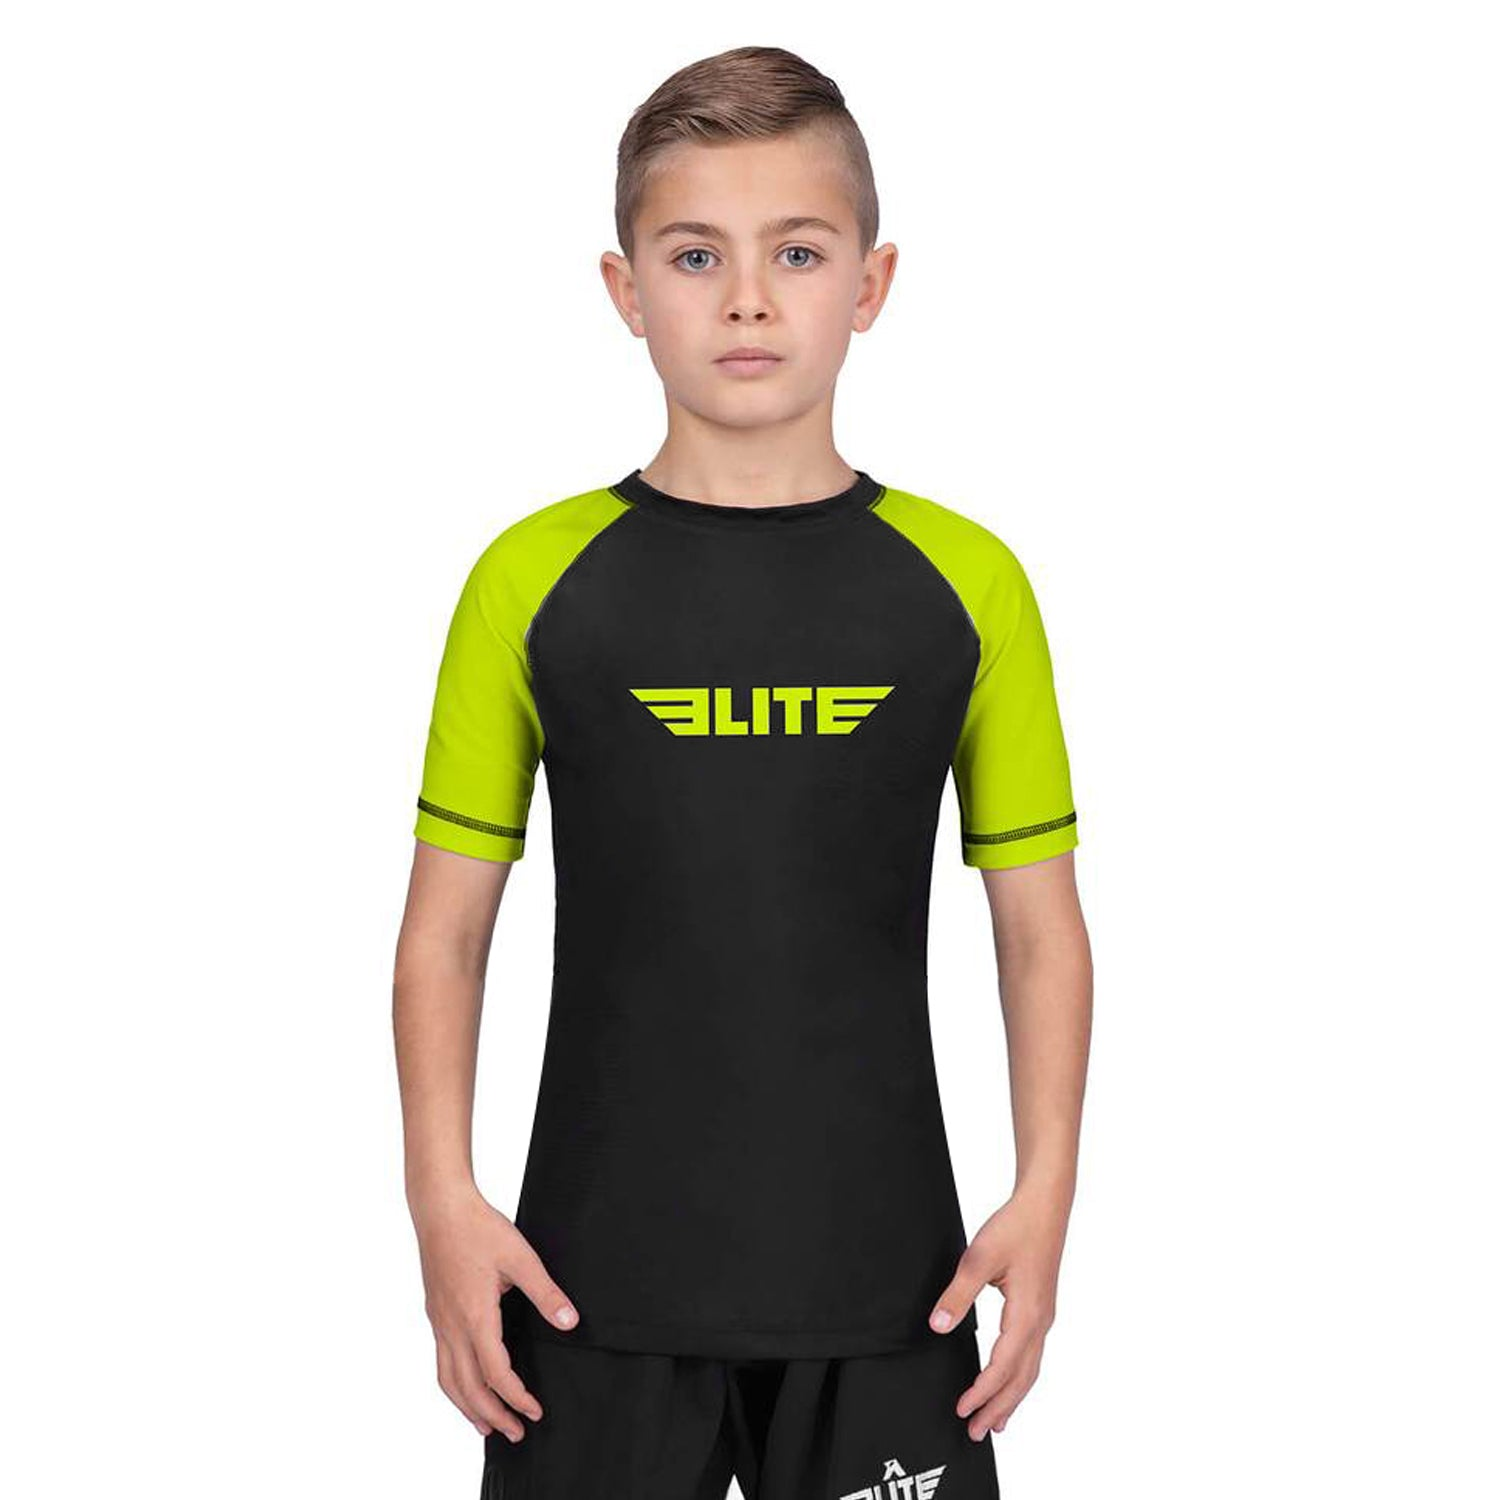 Elite Sports Standard Hi-Viz/Black Short Sleeve Kids Wrestling Rash Guard